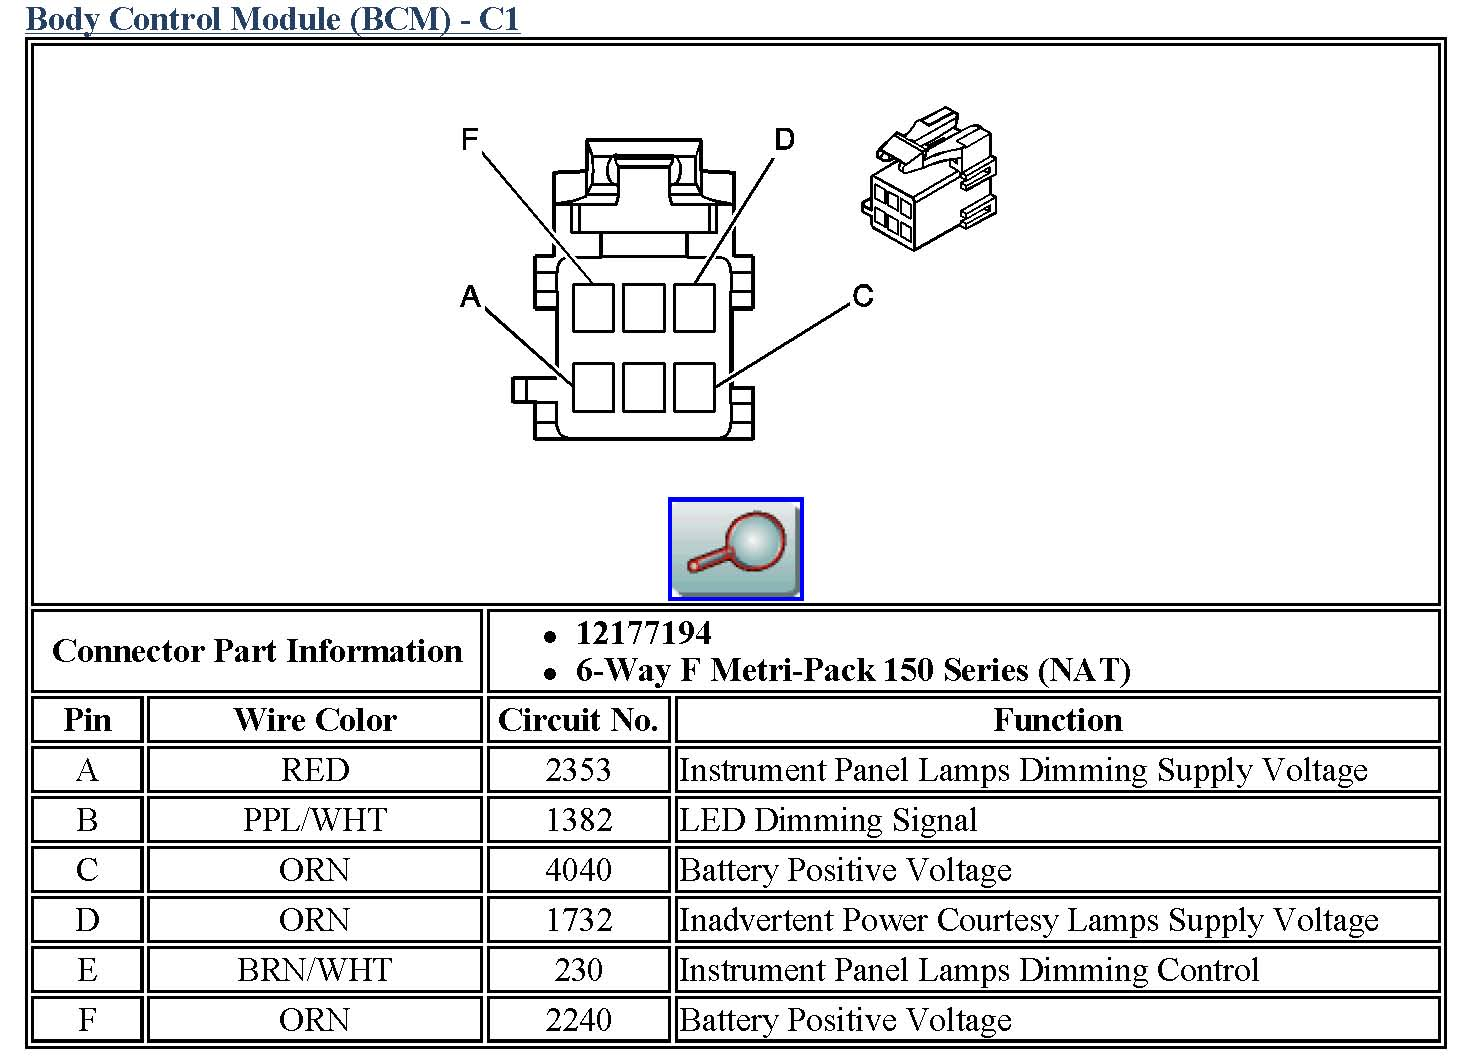 Wiring Diagram For Colorado on 2005 colorado engine, chevy colorado parts diagram, 2005 colorado parts diagram, 2005 colorado starter, chevy colorado 2005 electrical diagram, 2005 colorado fan belt, 2005 colorado radio replacement, 2005 colorado switch, 2005 colorado timing, 2005 colorado thermostat replacement, 2005 colorado headlights, 2005 colorado fuse box diagram, 2005 colorado frame, 2005 colorado electrical wiring, 2005 colorado exhaust diagram, 2005 colorado chassis, 2005 colorado relay, 2005 colorado radio wiring, 2005 colorado accessories, 2005 gmc canyon engine diagram,